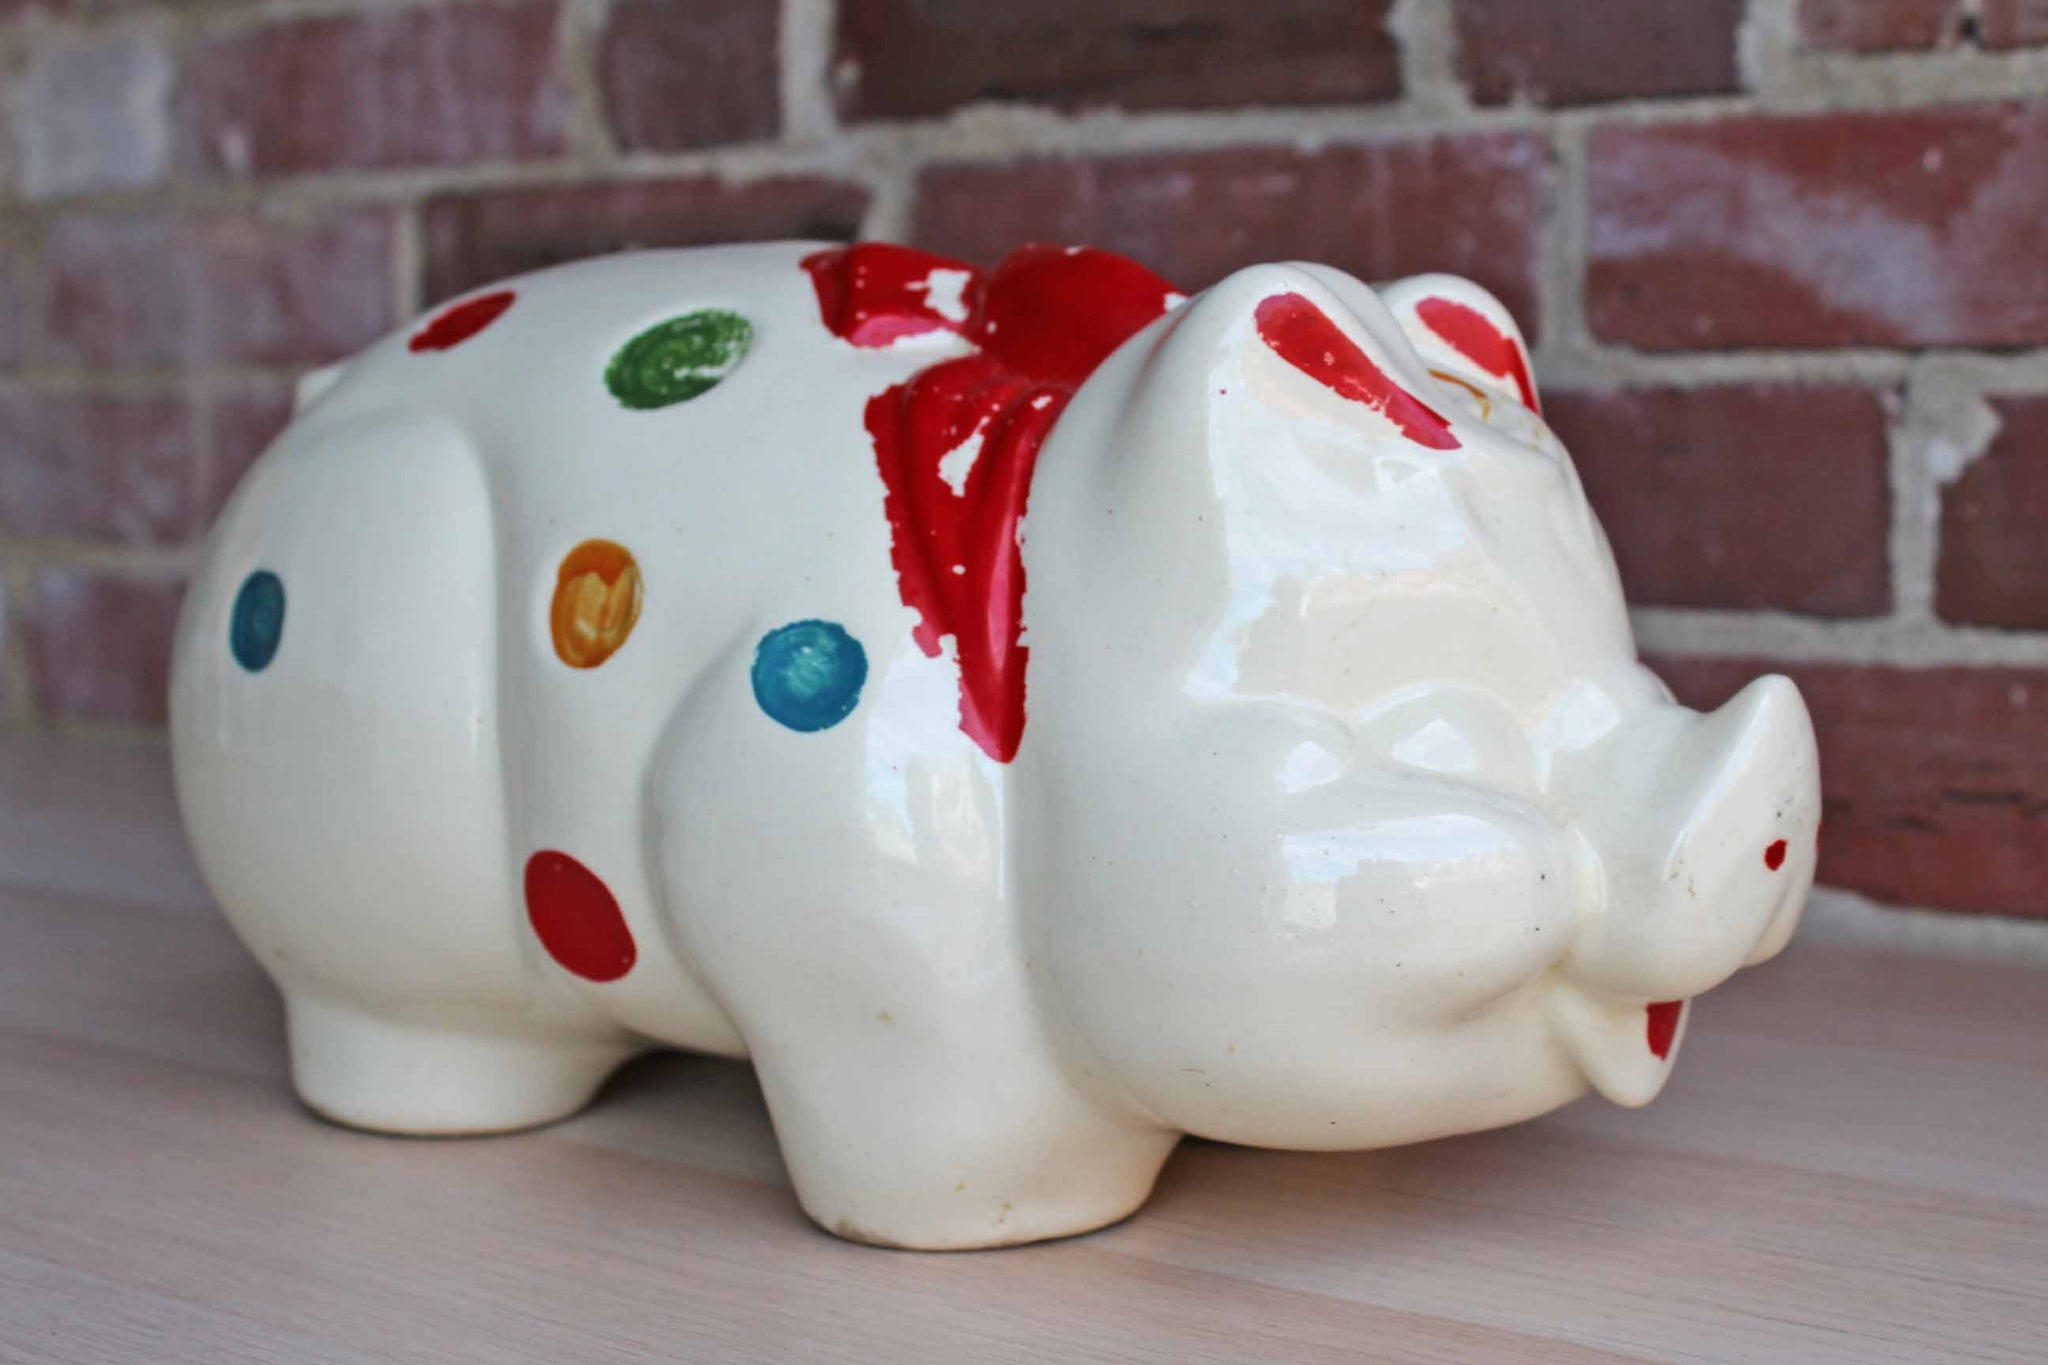 Hull Art Pottery (Ohio, USA) Large Ceramic Polka Dot Piggy Bank